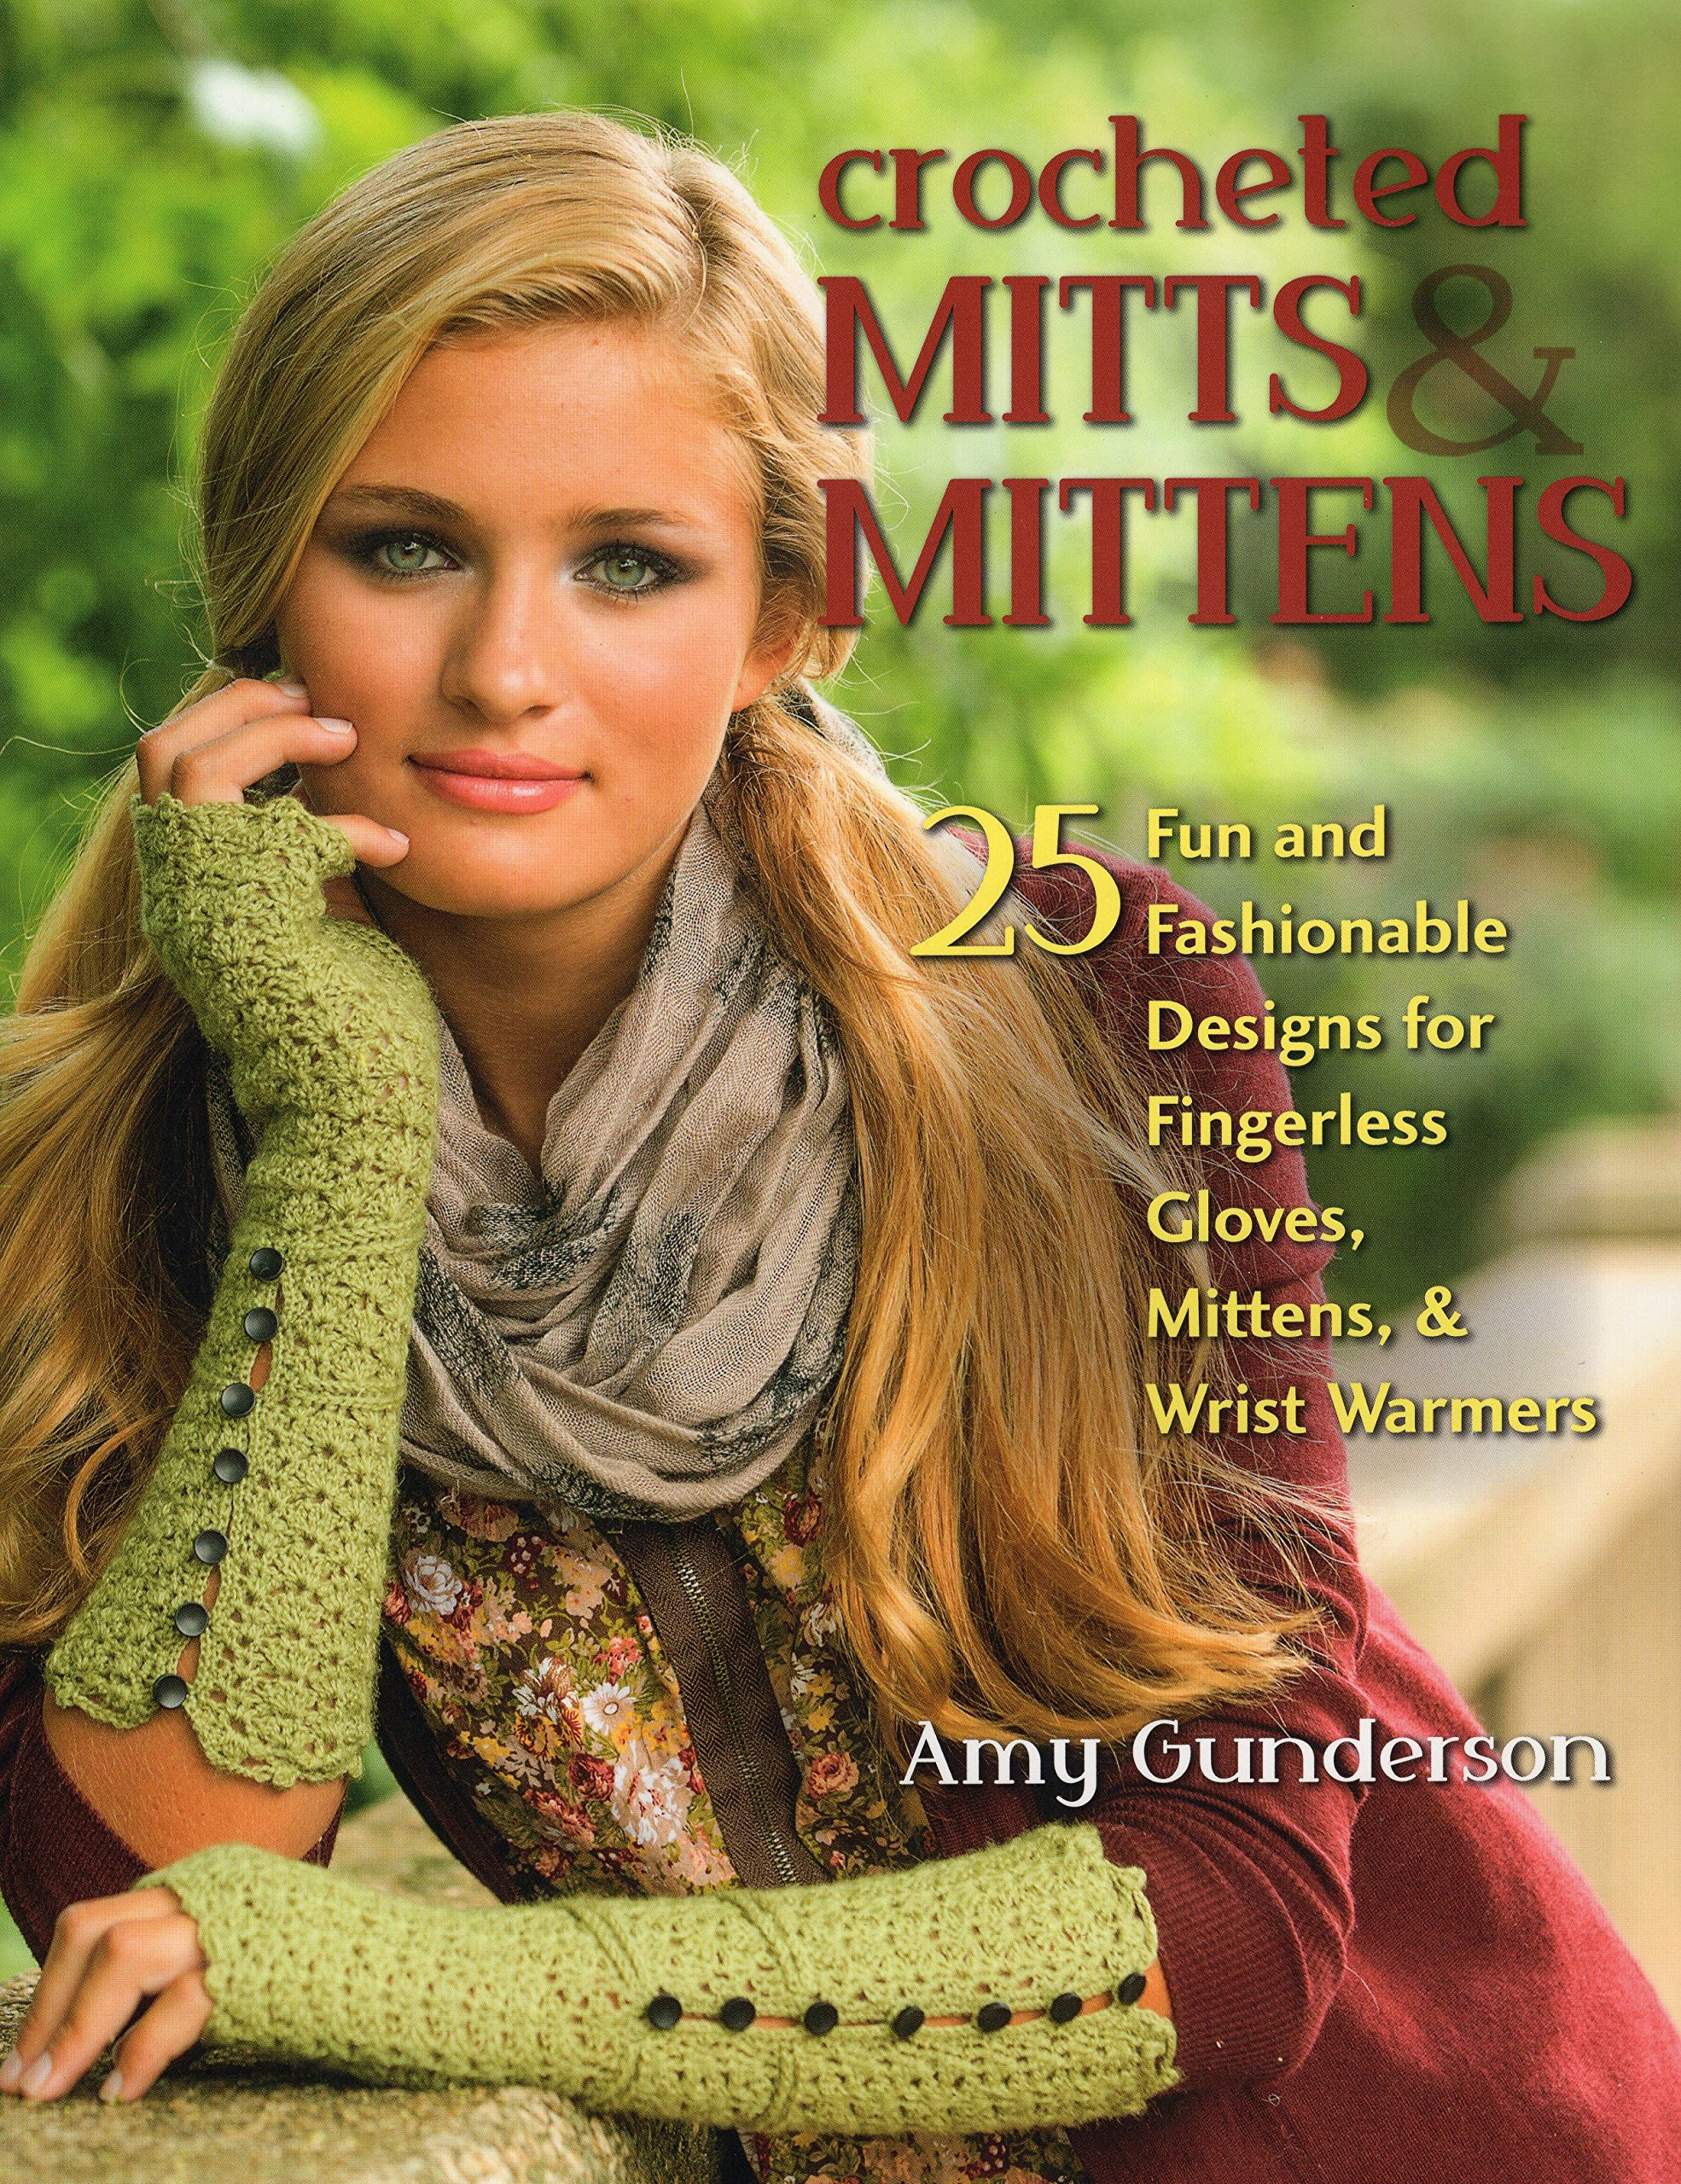 Fingerless gloves amazon - Crocheted Mitts Mittens 25 Fun And Fashionable Designs For Fingerless Gloves Mittens Wrist Warmers Amy Gunderson 0011557014105 Amazon Com Books